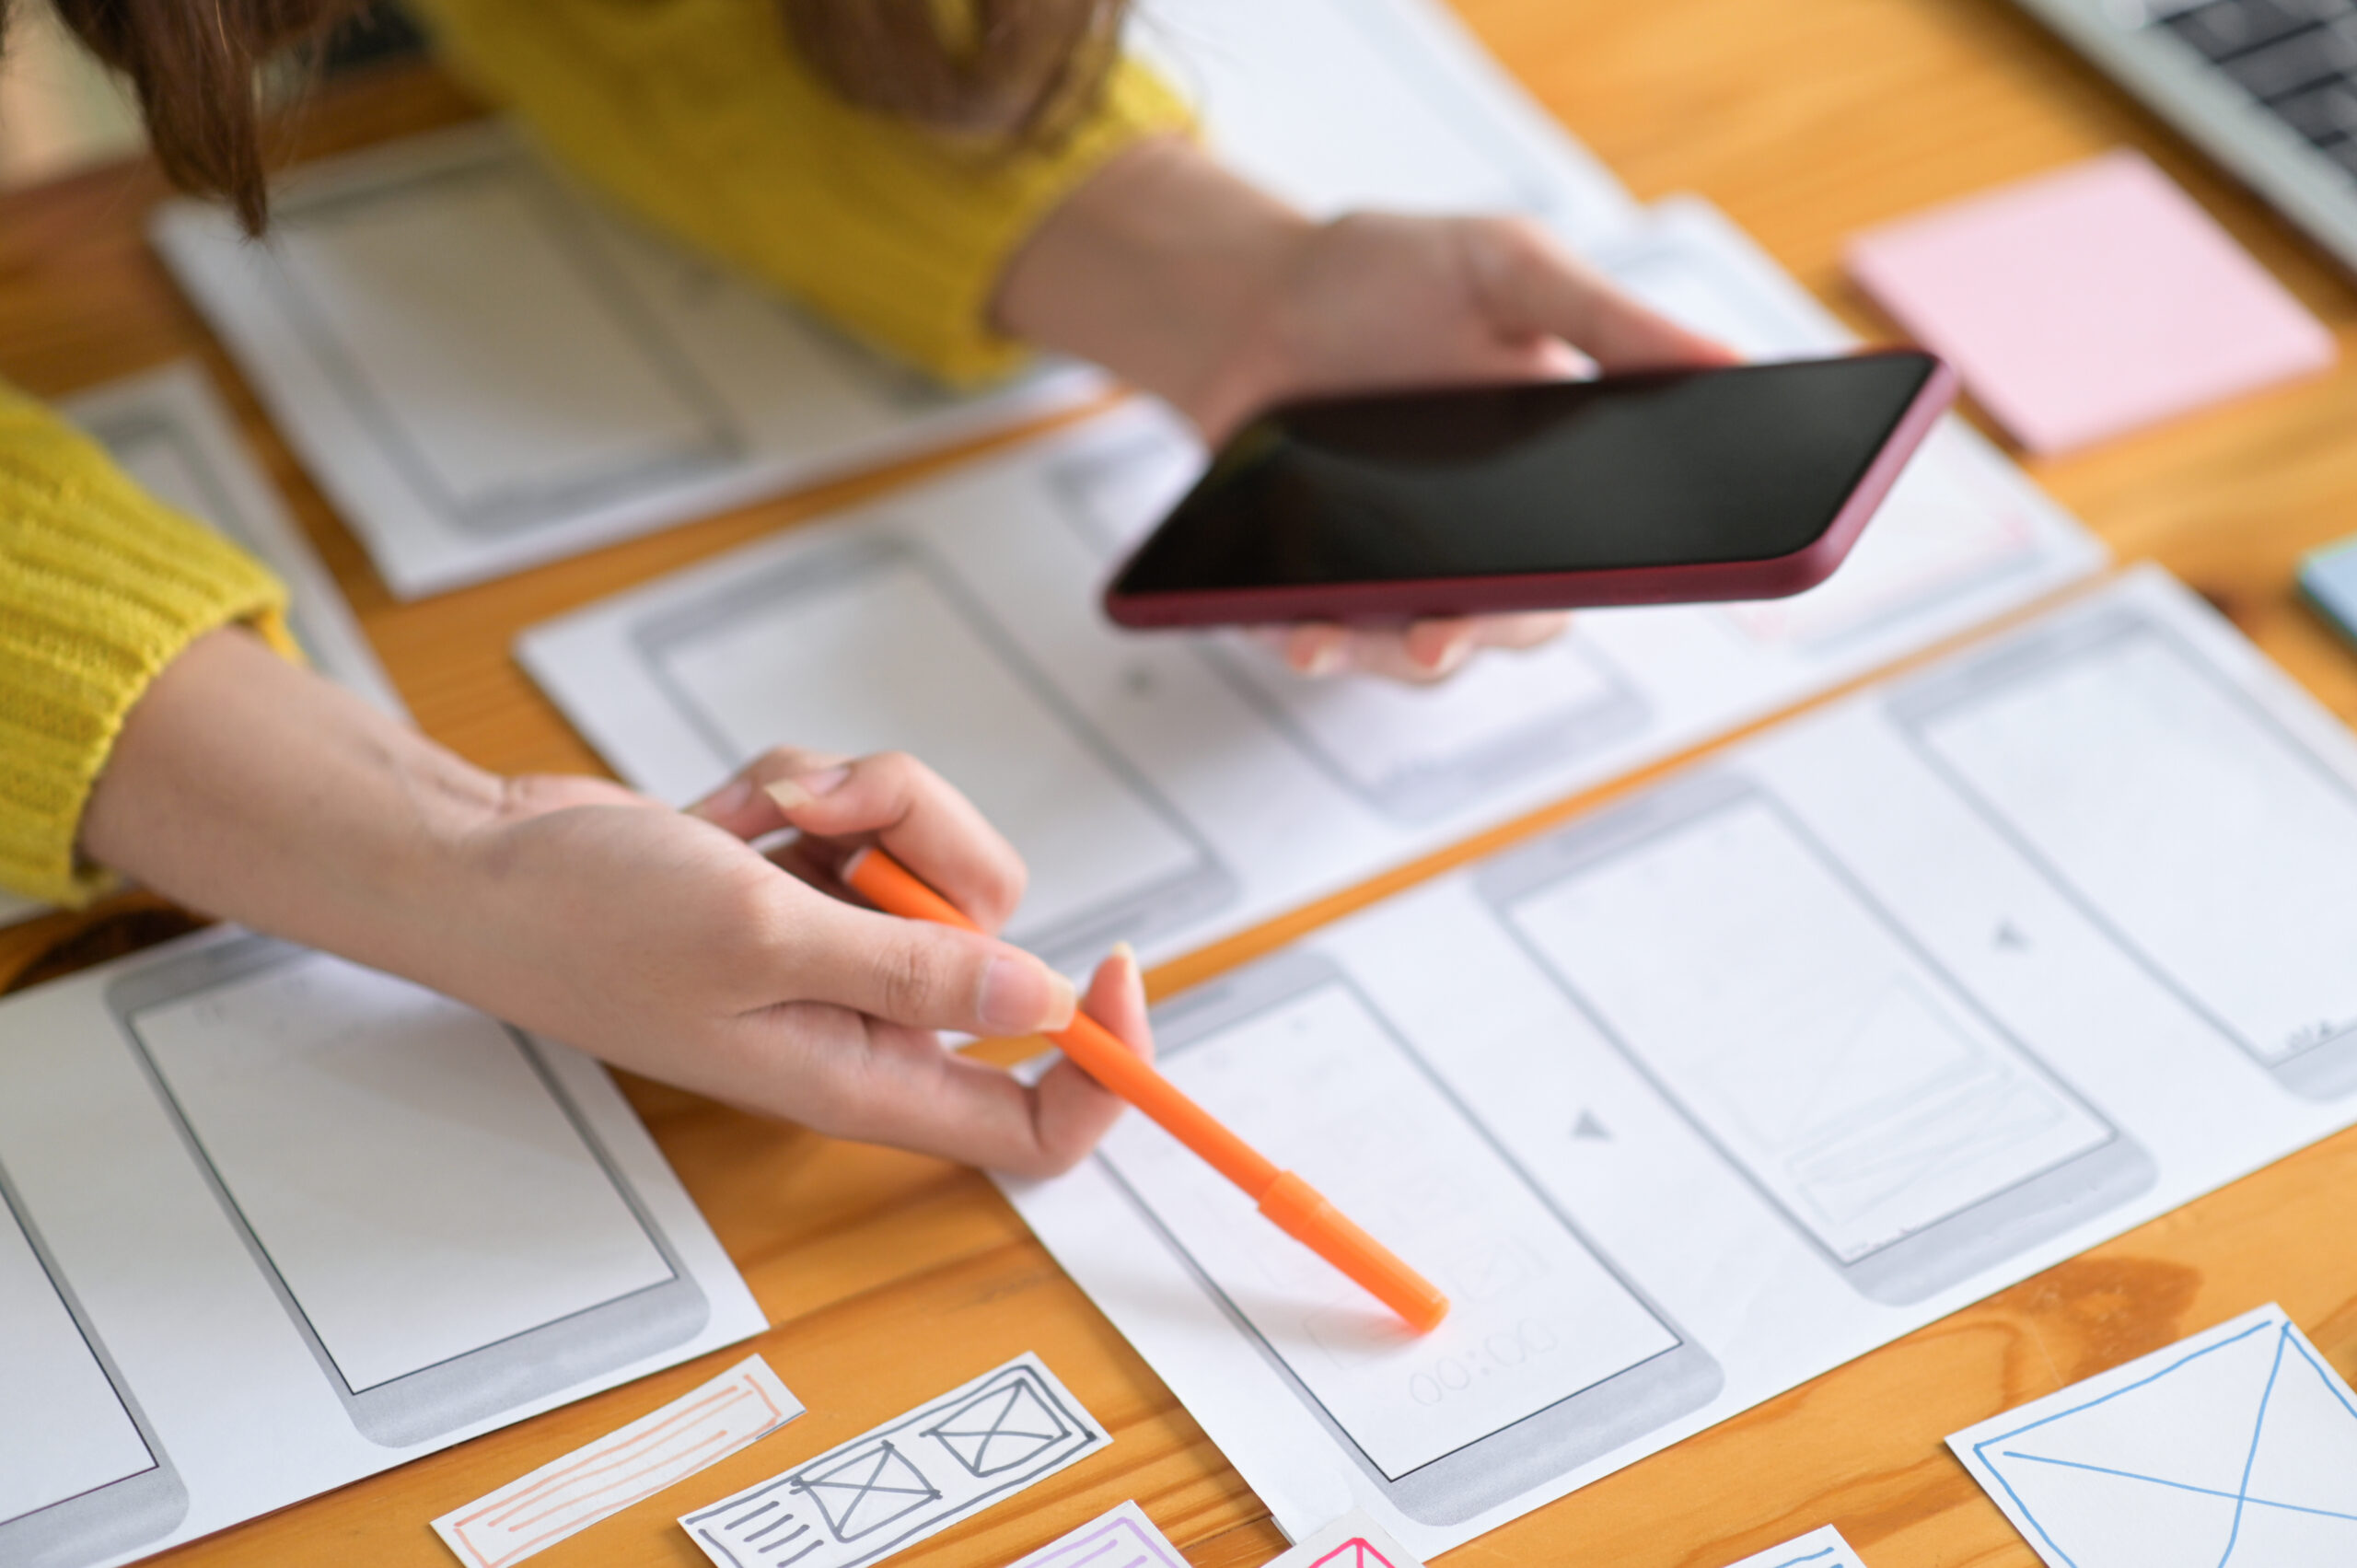 Smartphone screen designers are working to keep up with the new